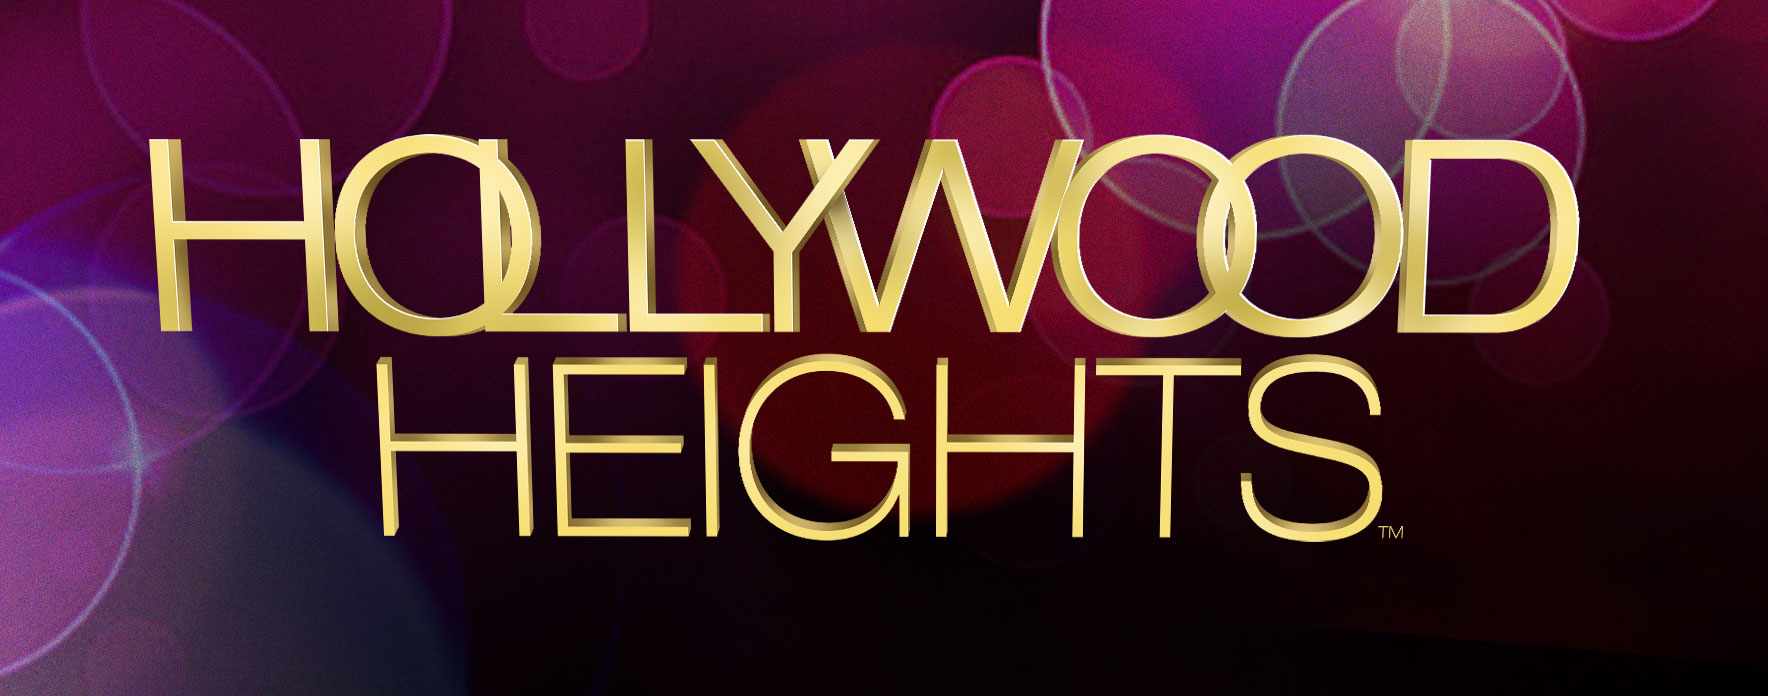 Hollywood Heights title treatment